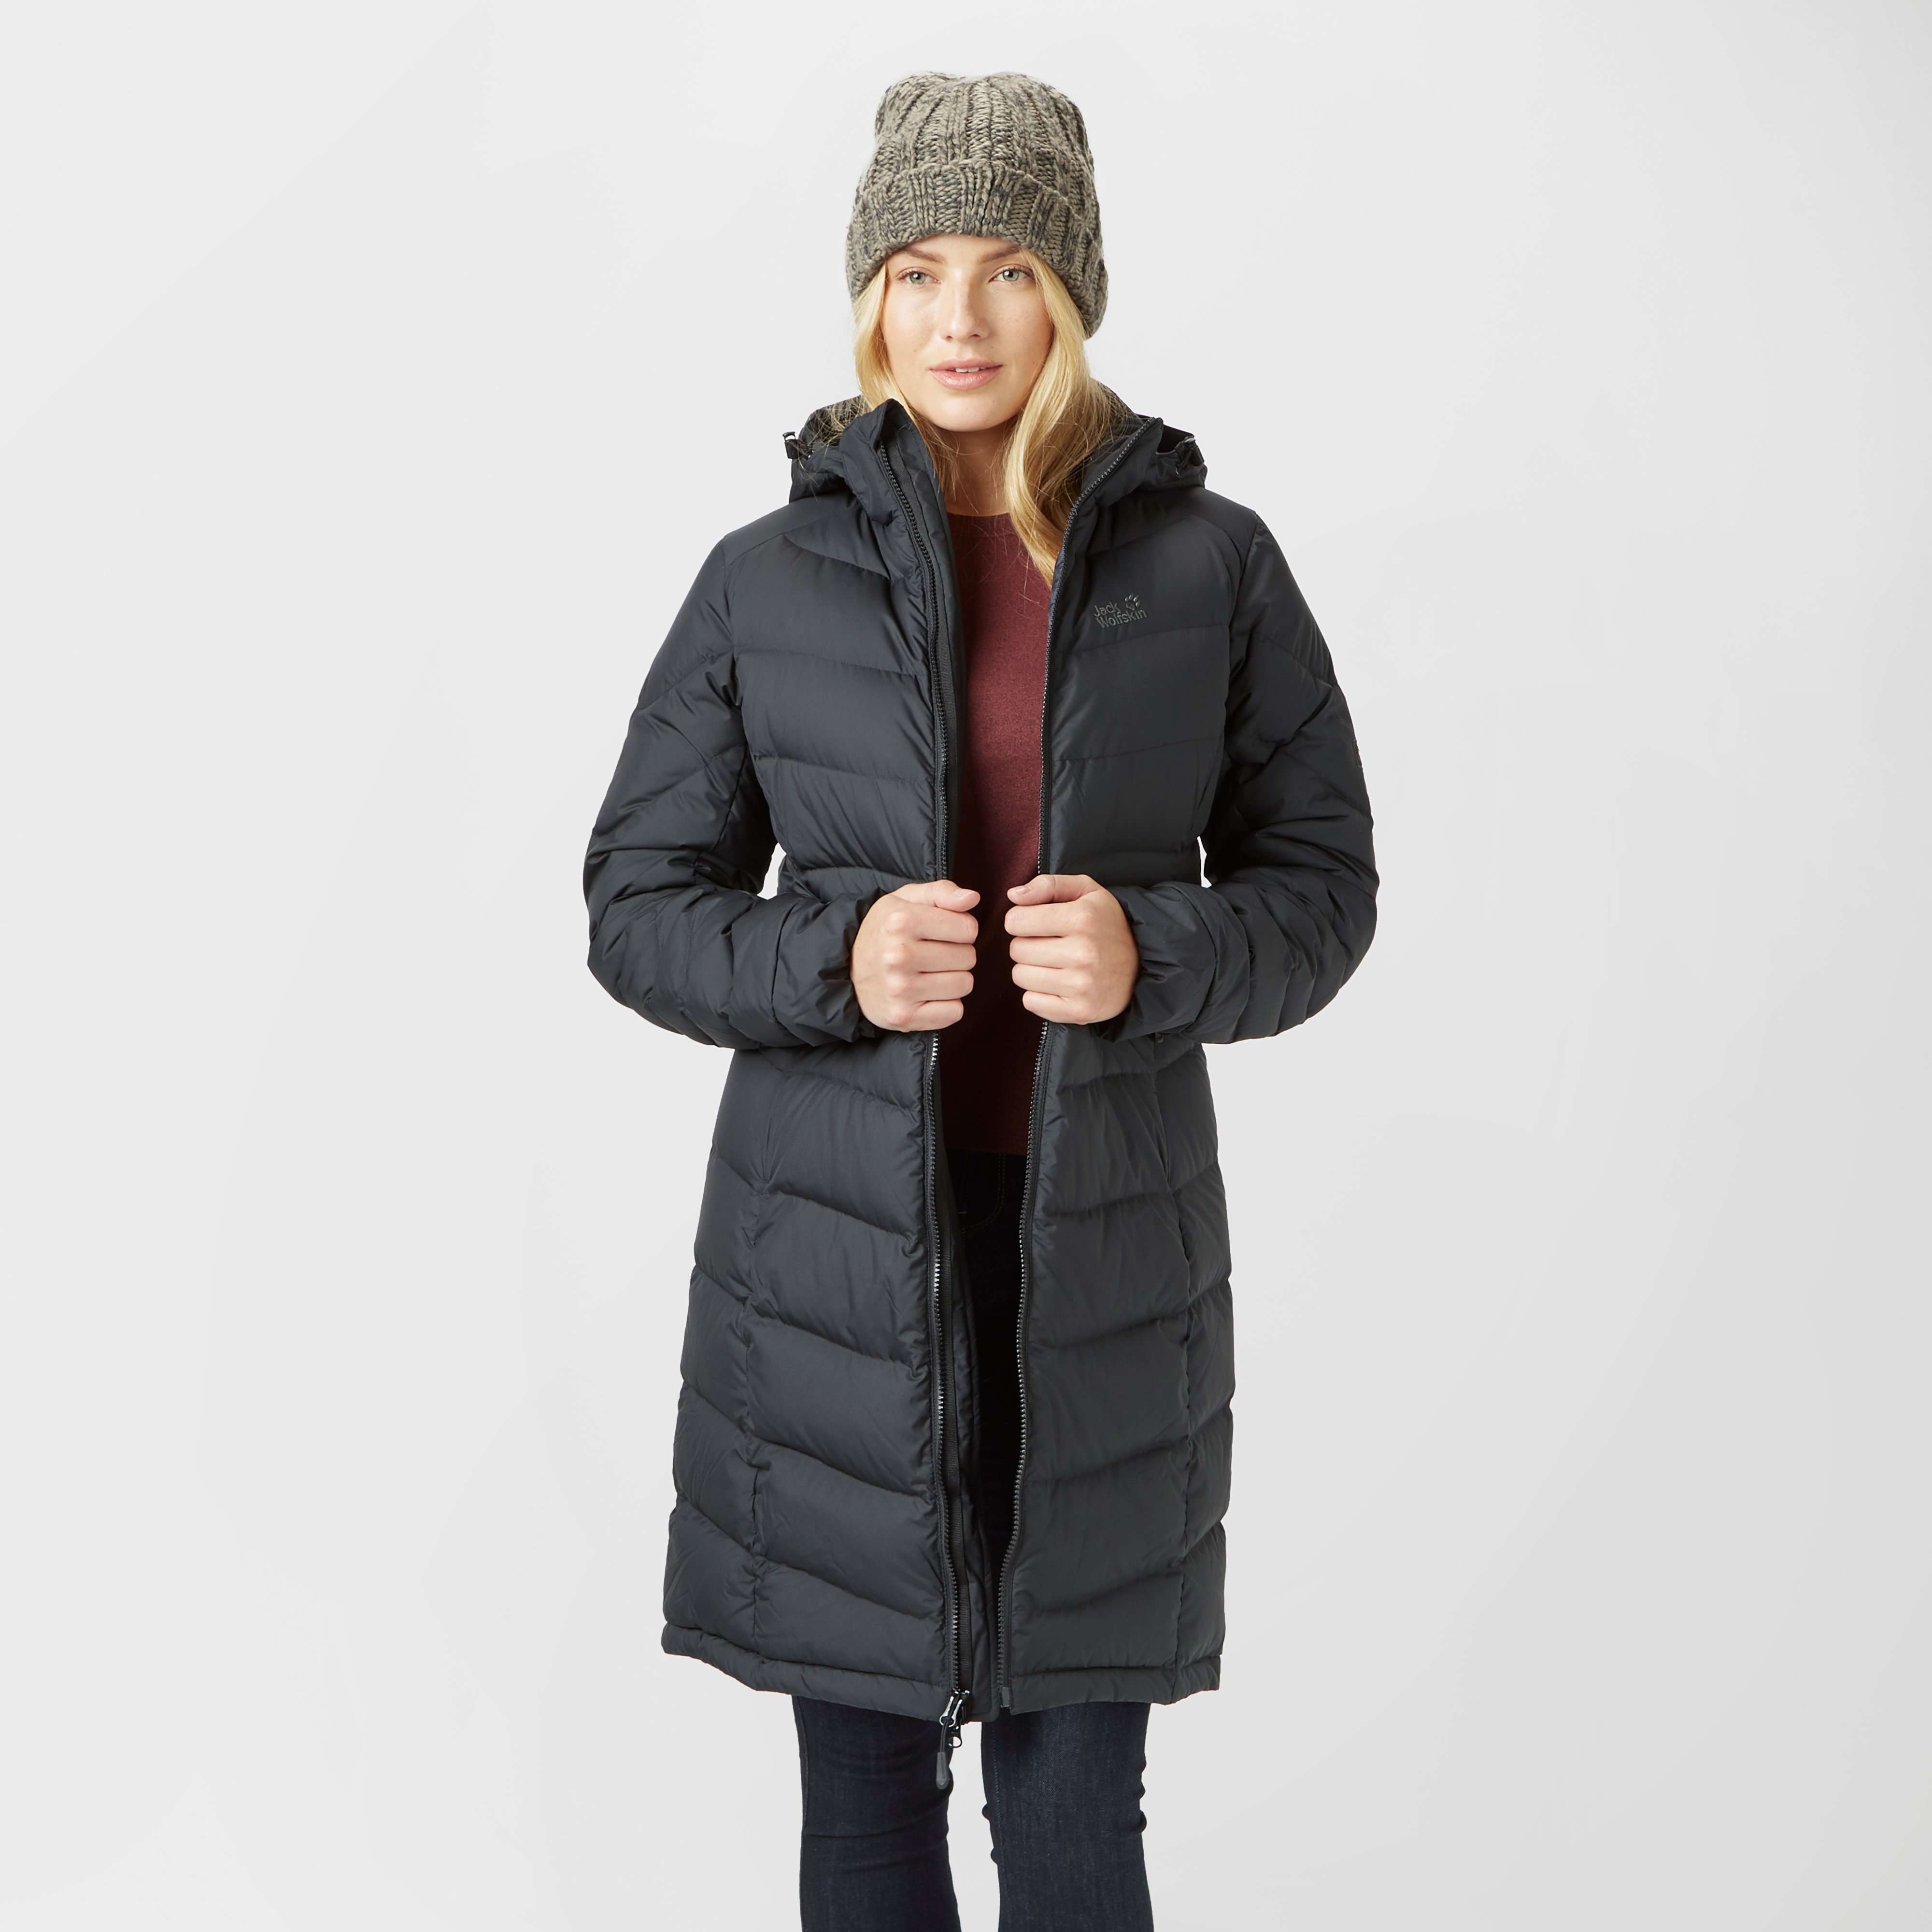 JACK WOLFSKIN Women's Selenium Long Jacket